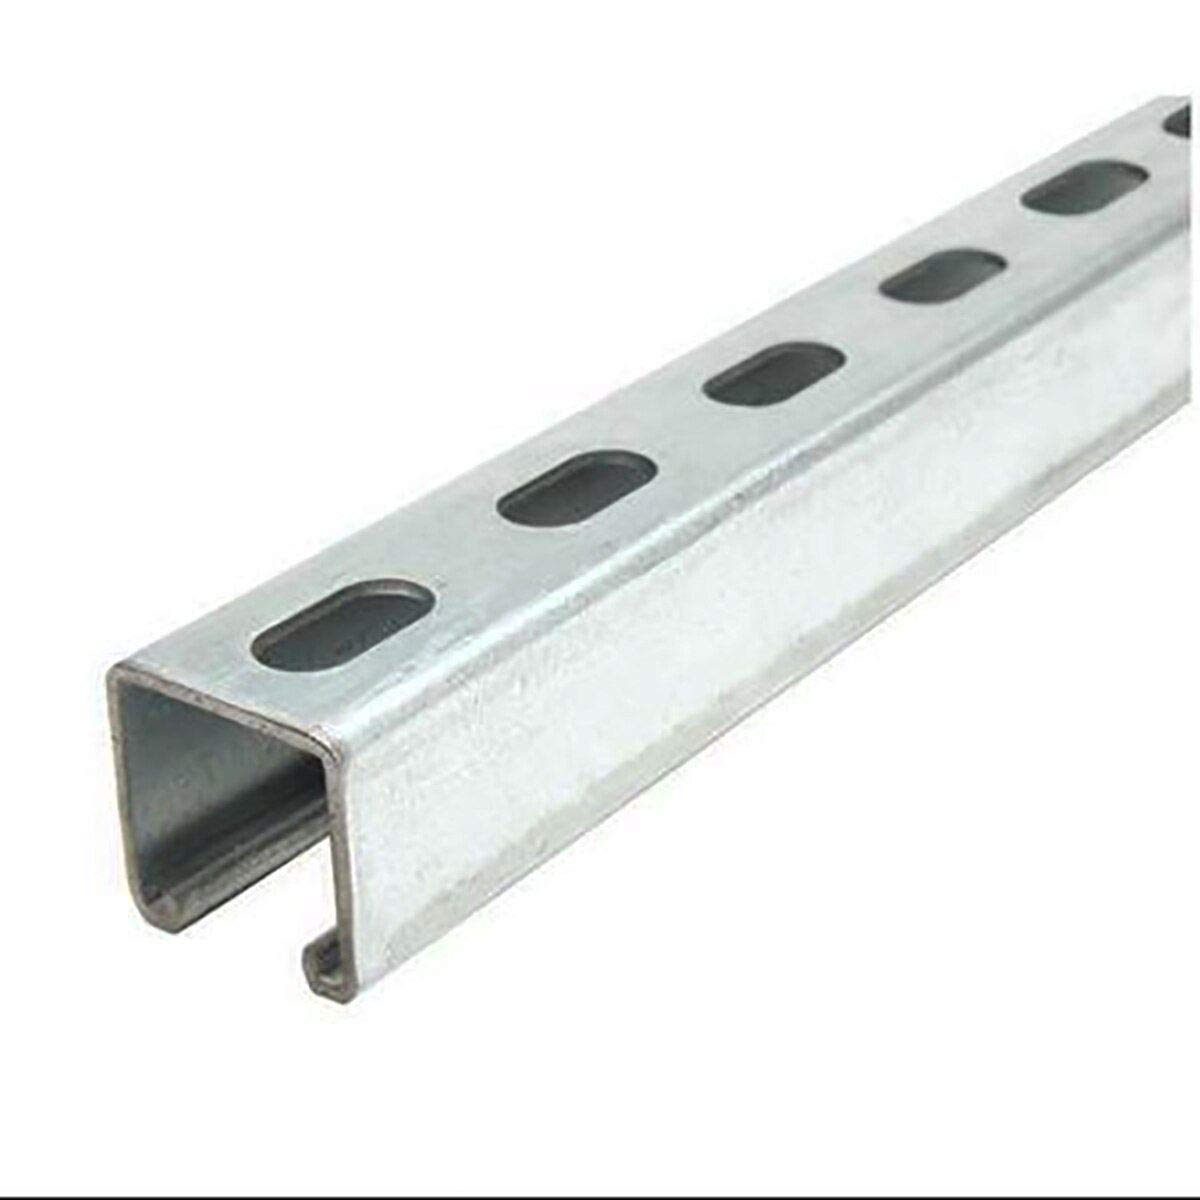 x 72 inches 2.125 x 2.125 x 18 ga Online Metal Supply Galvanized Steel 4 Dimension Slotted Strut Channel